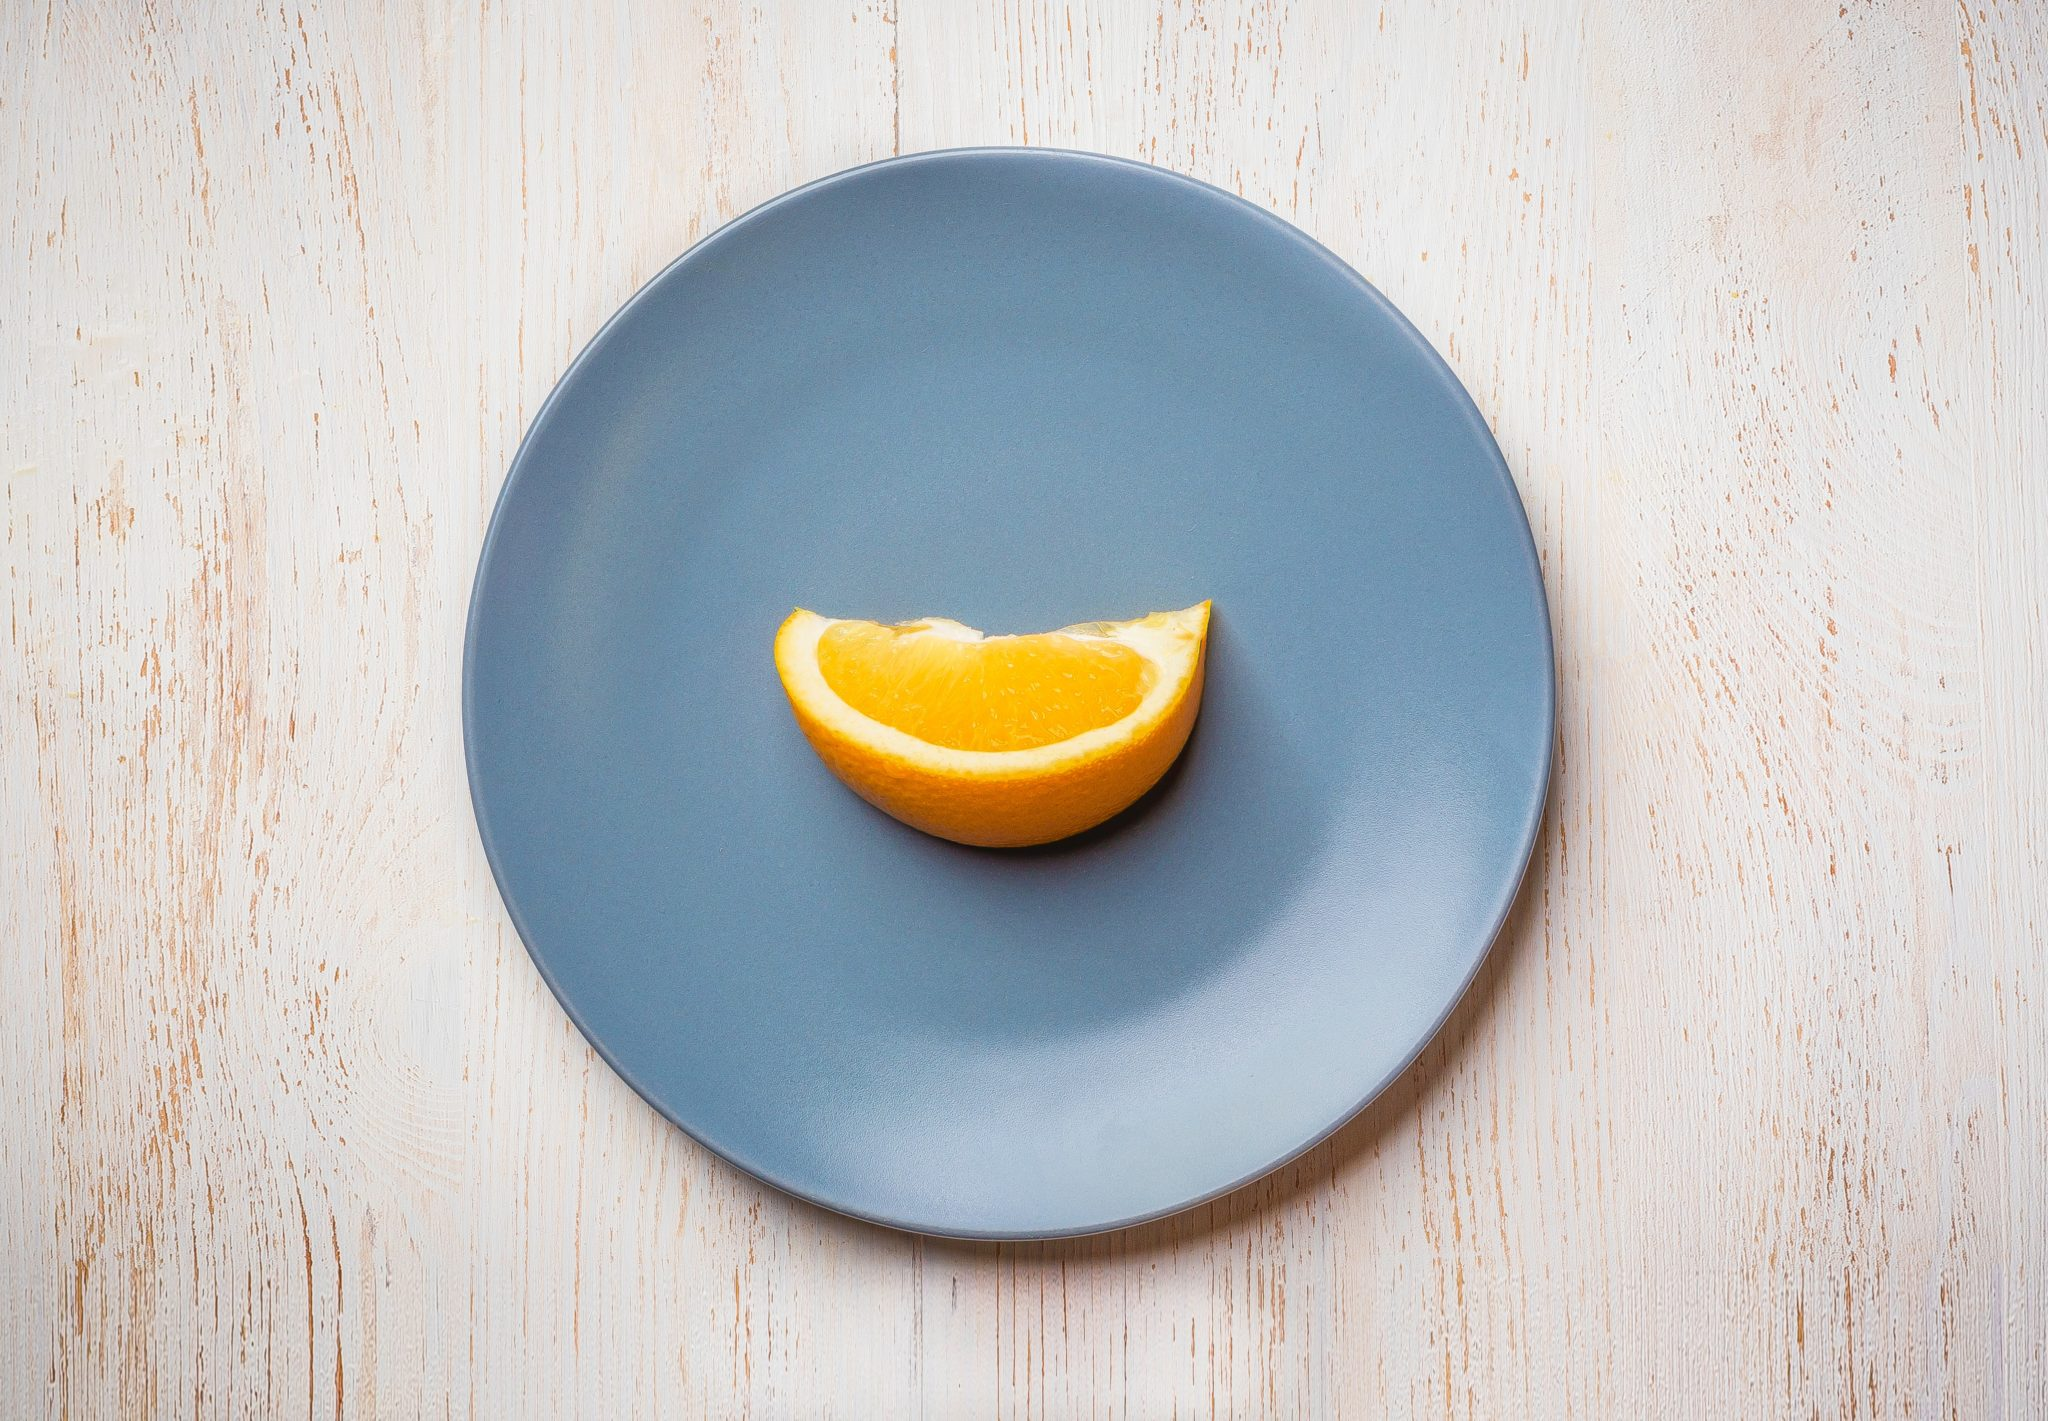 birds eye view of a blue plate with a single orange slice on it against a light background